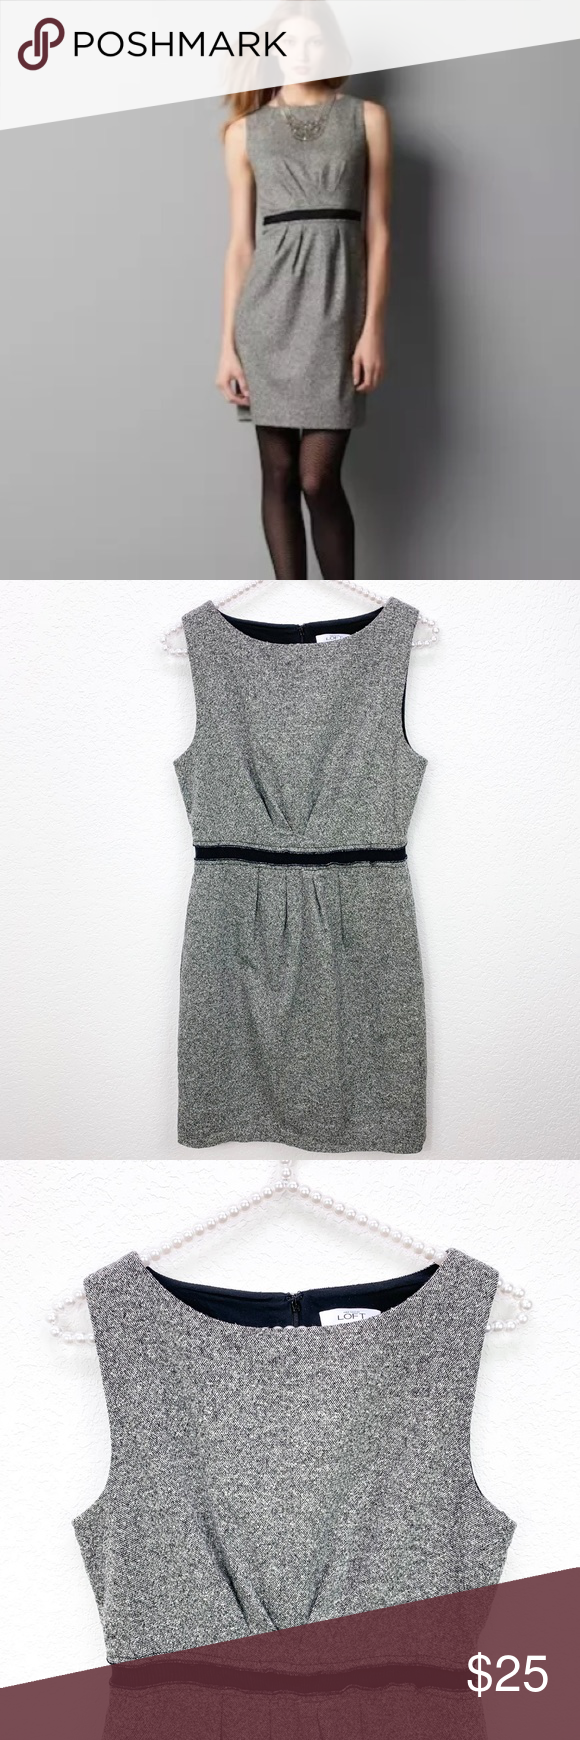 f8e344ae515 Ann Taylor Loft Gray Black Tweed Wool Dress Size 4 Great condition Black  white tweed wool silk blend with stretch Lined (poly) Zip up back No  pockets ...